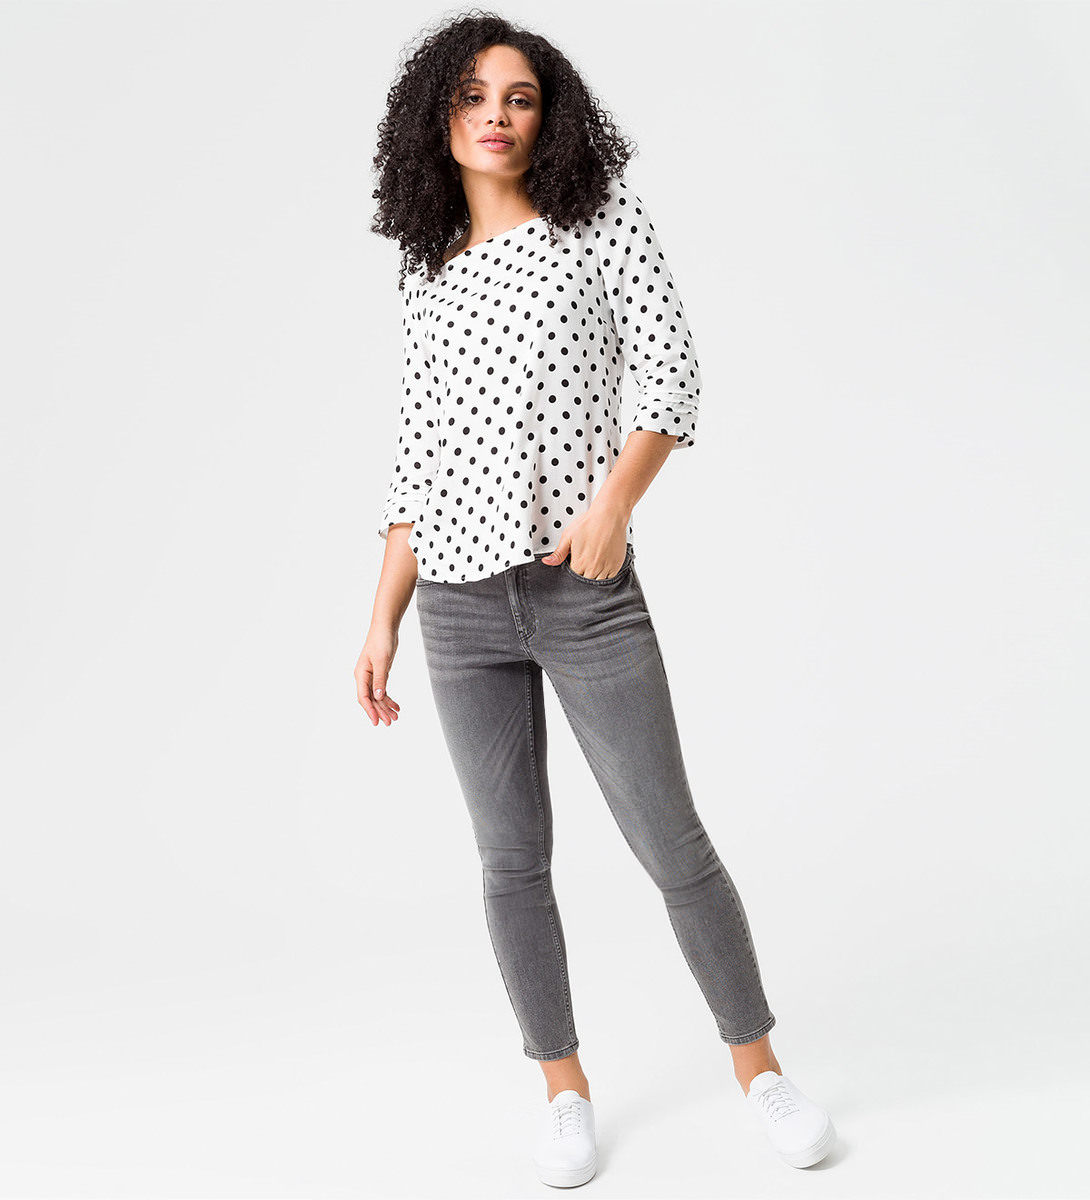 Bluse mit Polka Dots in offwhite